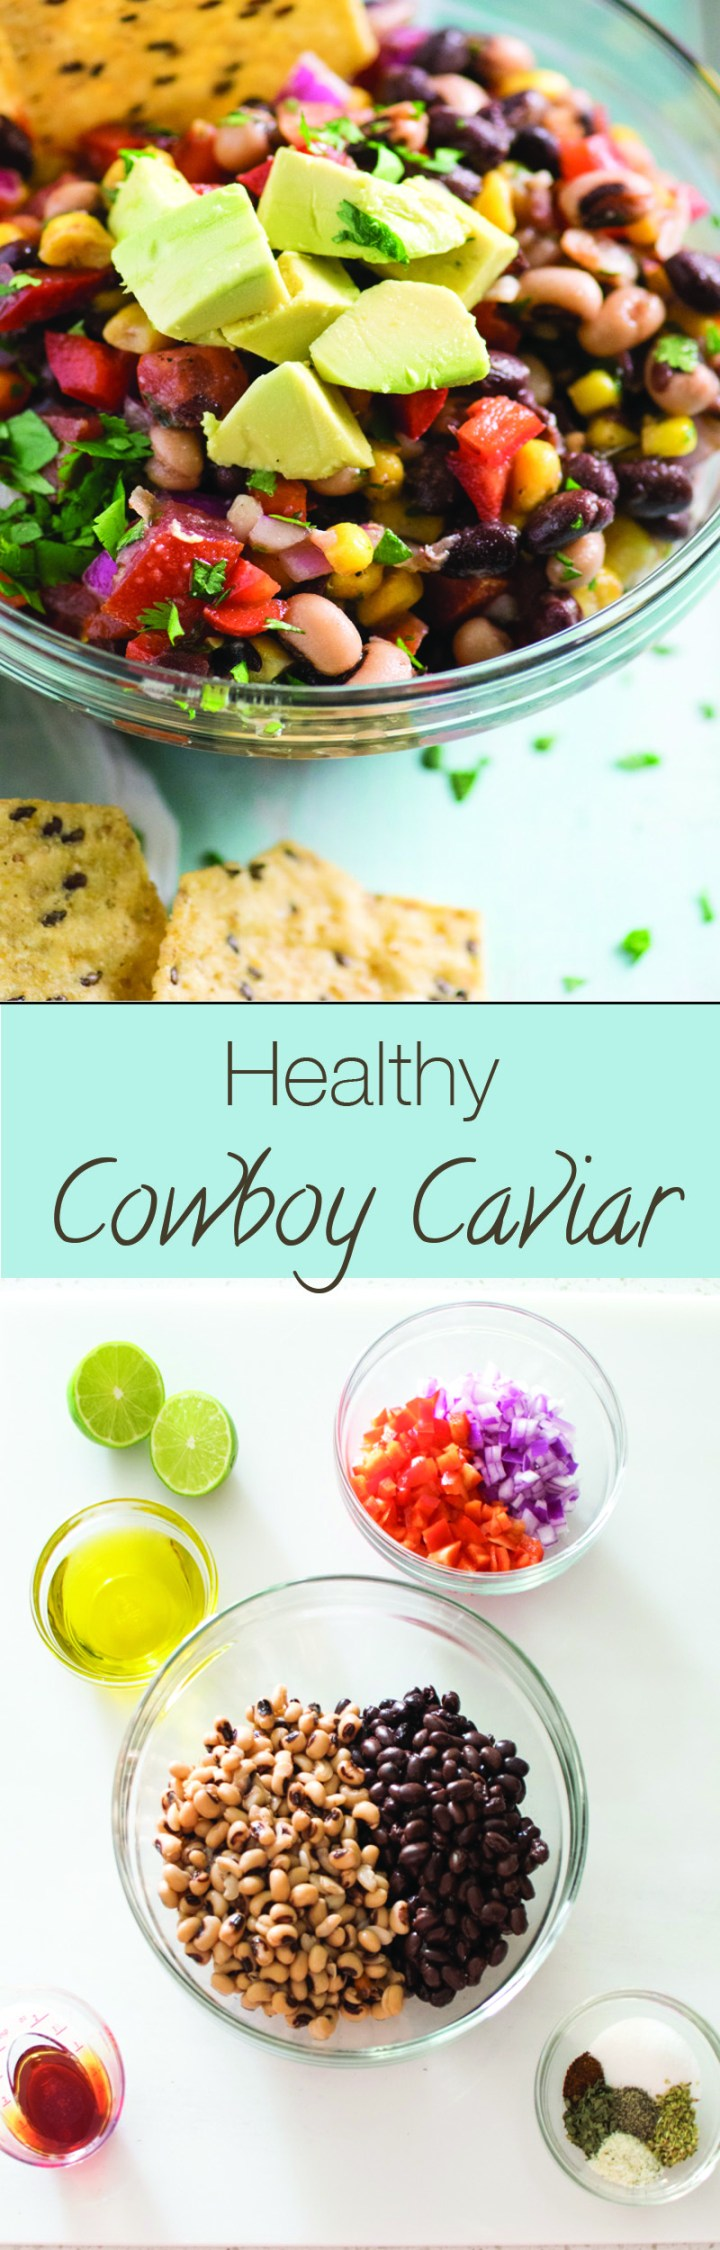 This healthy Cowboy Caviar is a colorful, fresh, low carb snack or summer picnic dip!